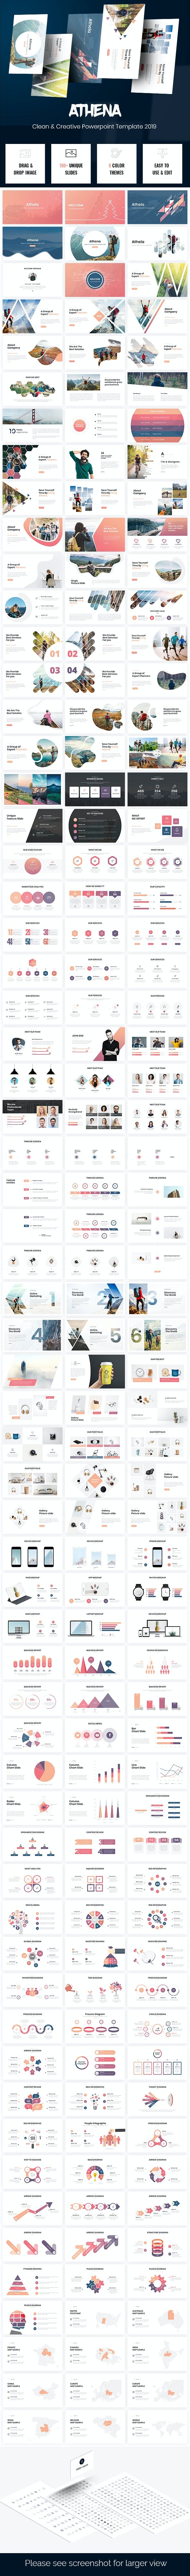 athena creative powerpoint template 2019 by williamhenry989